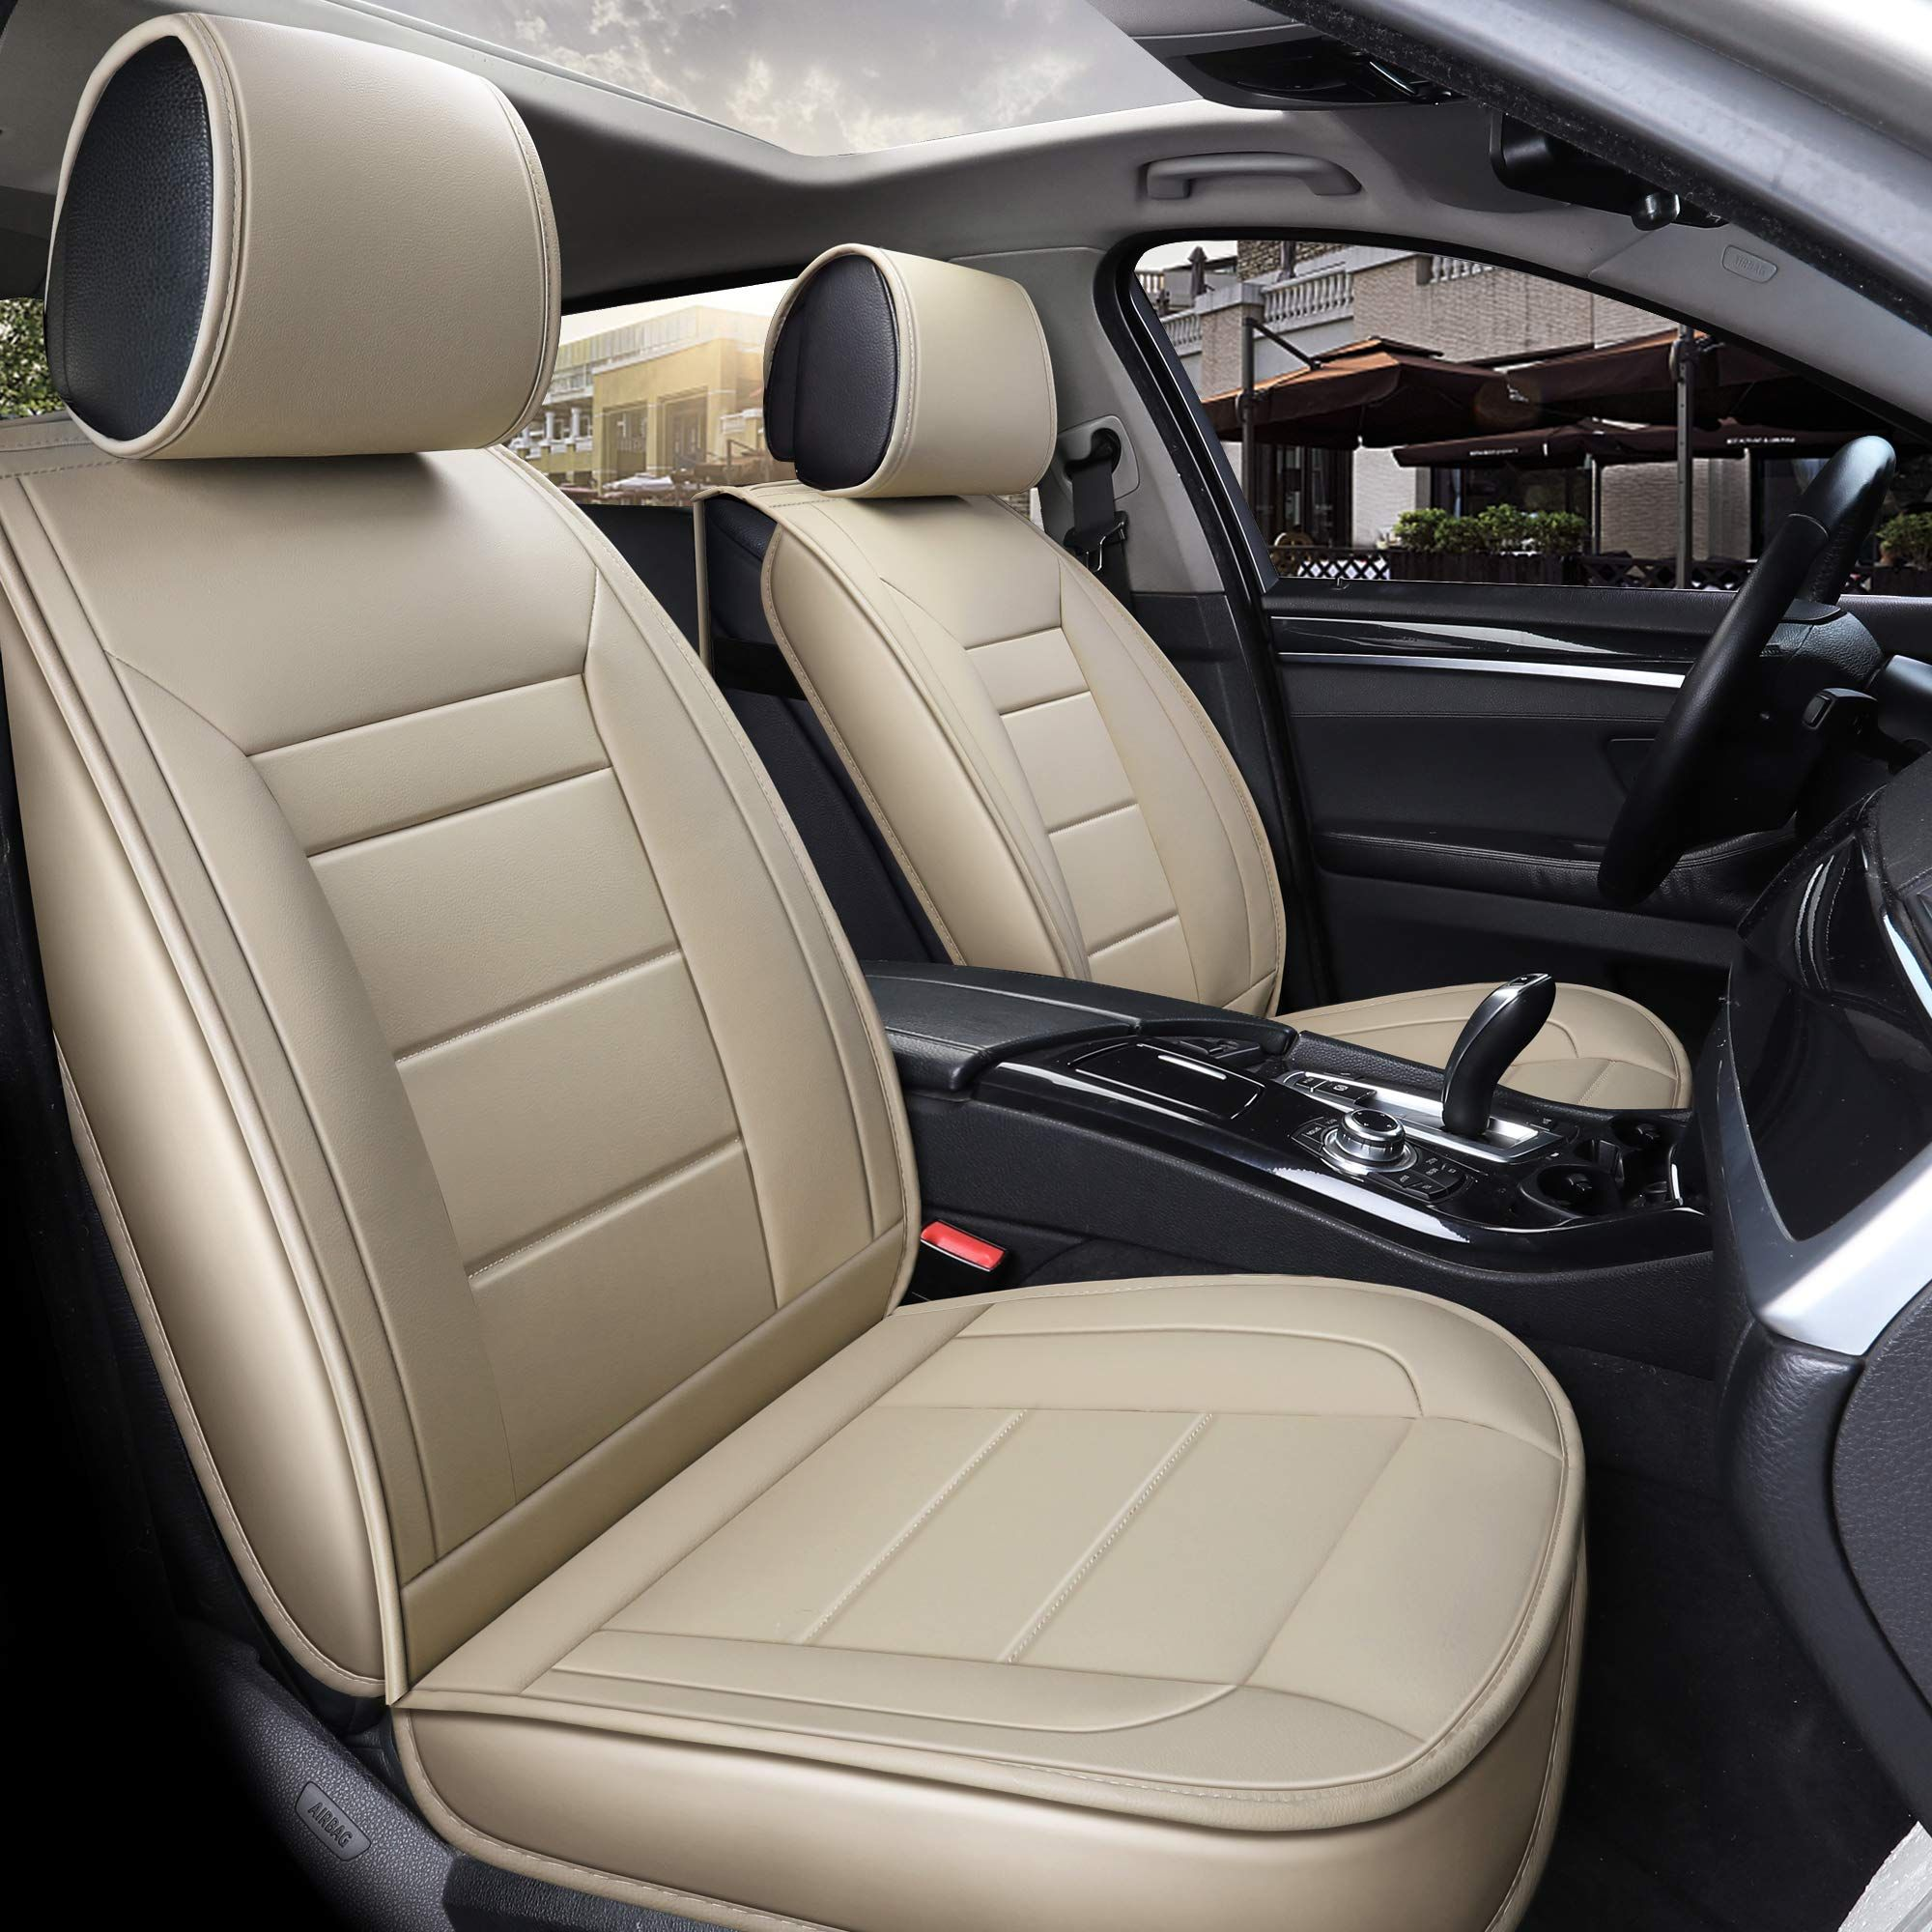 INCH EMPIRE Car Seat Cover Easy to Clean Artificial